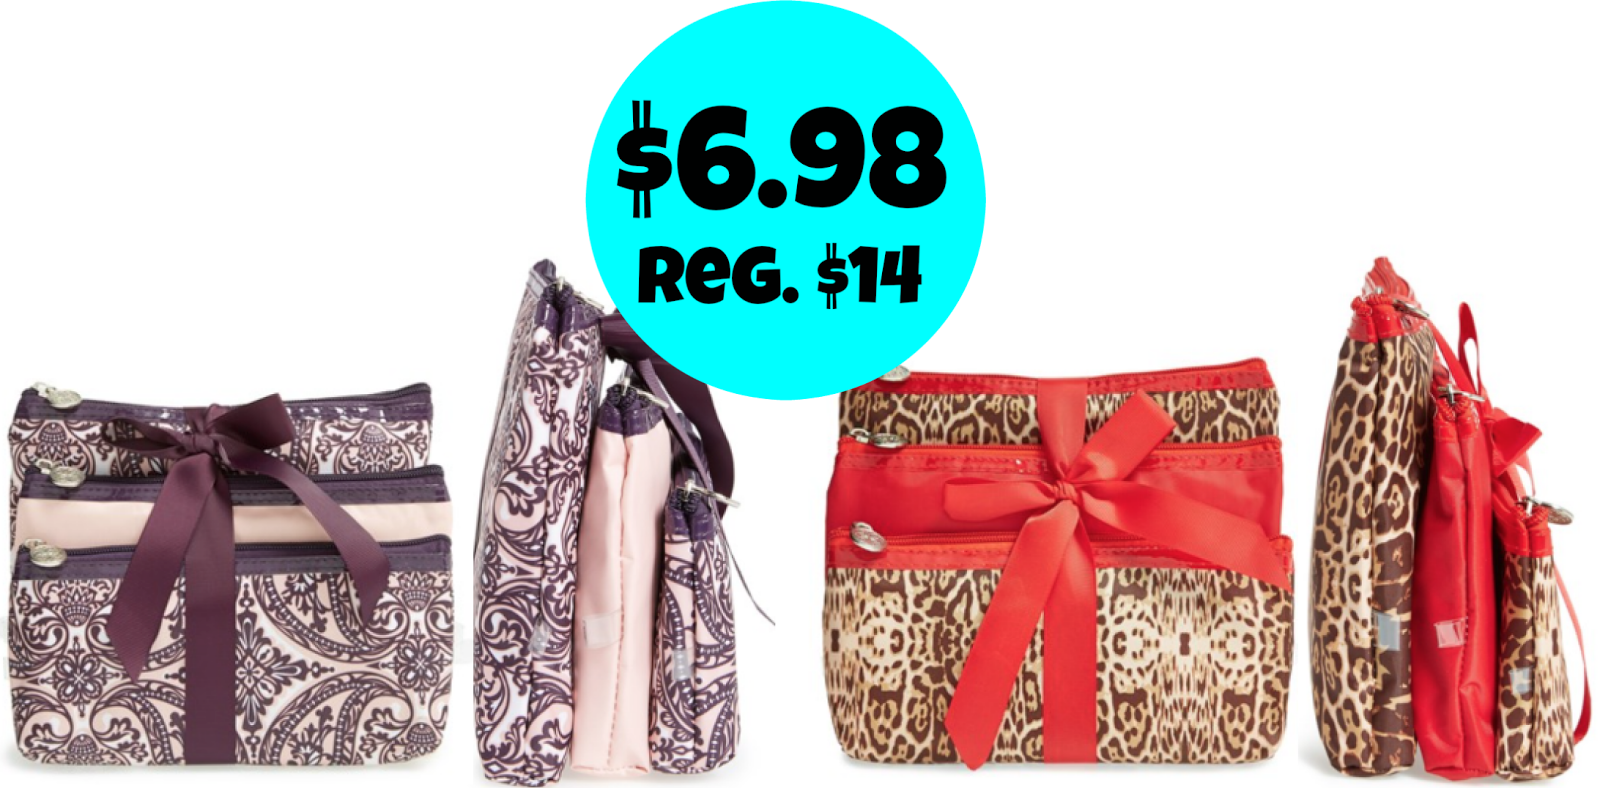 Nordstrom .com: Sets of 3 Tri-Coastal Design Cosmetic Bags = $6.98 + FREE Shipping! Regularly $14